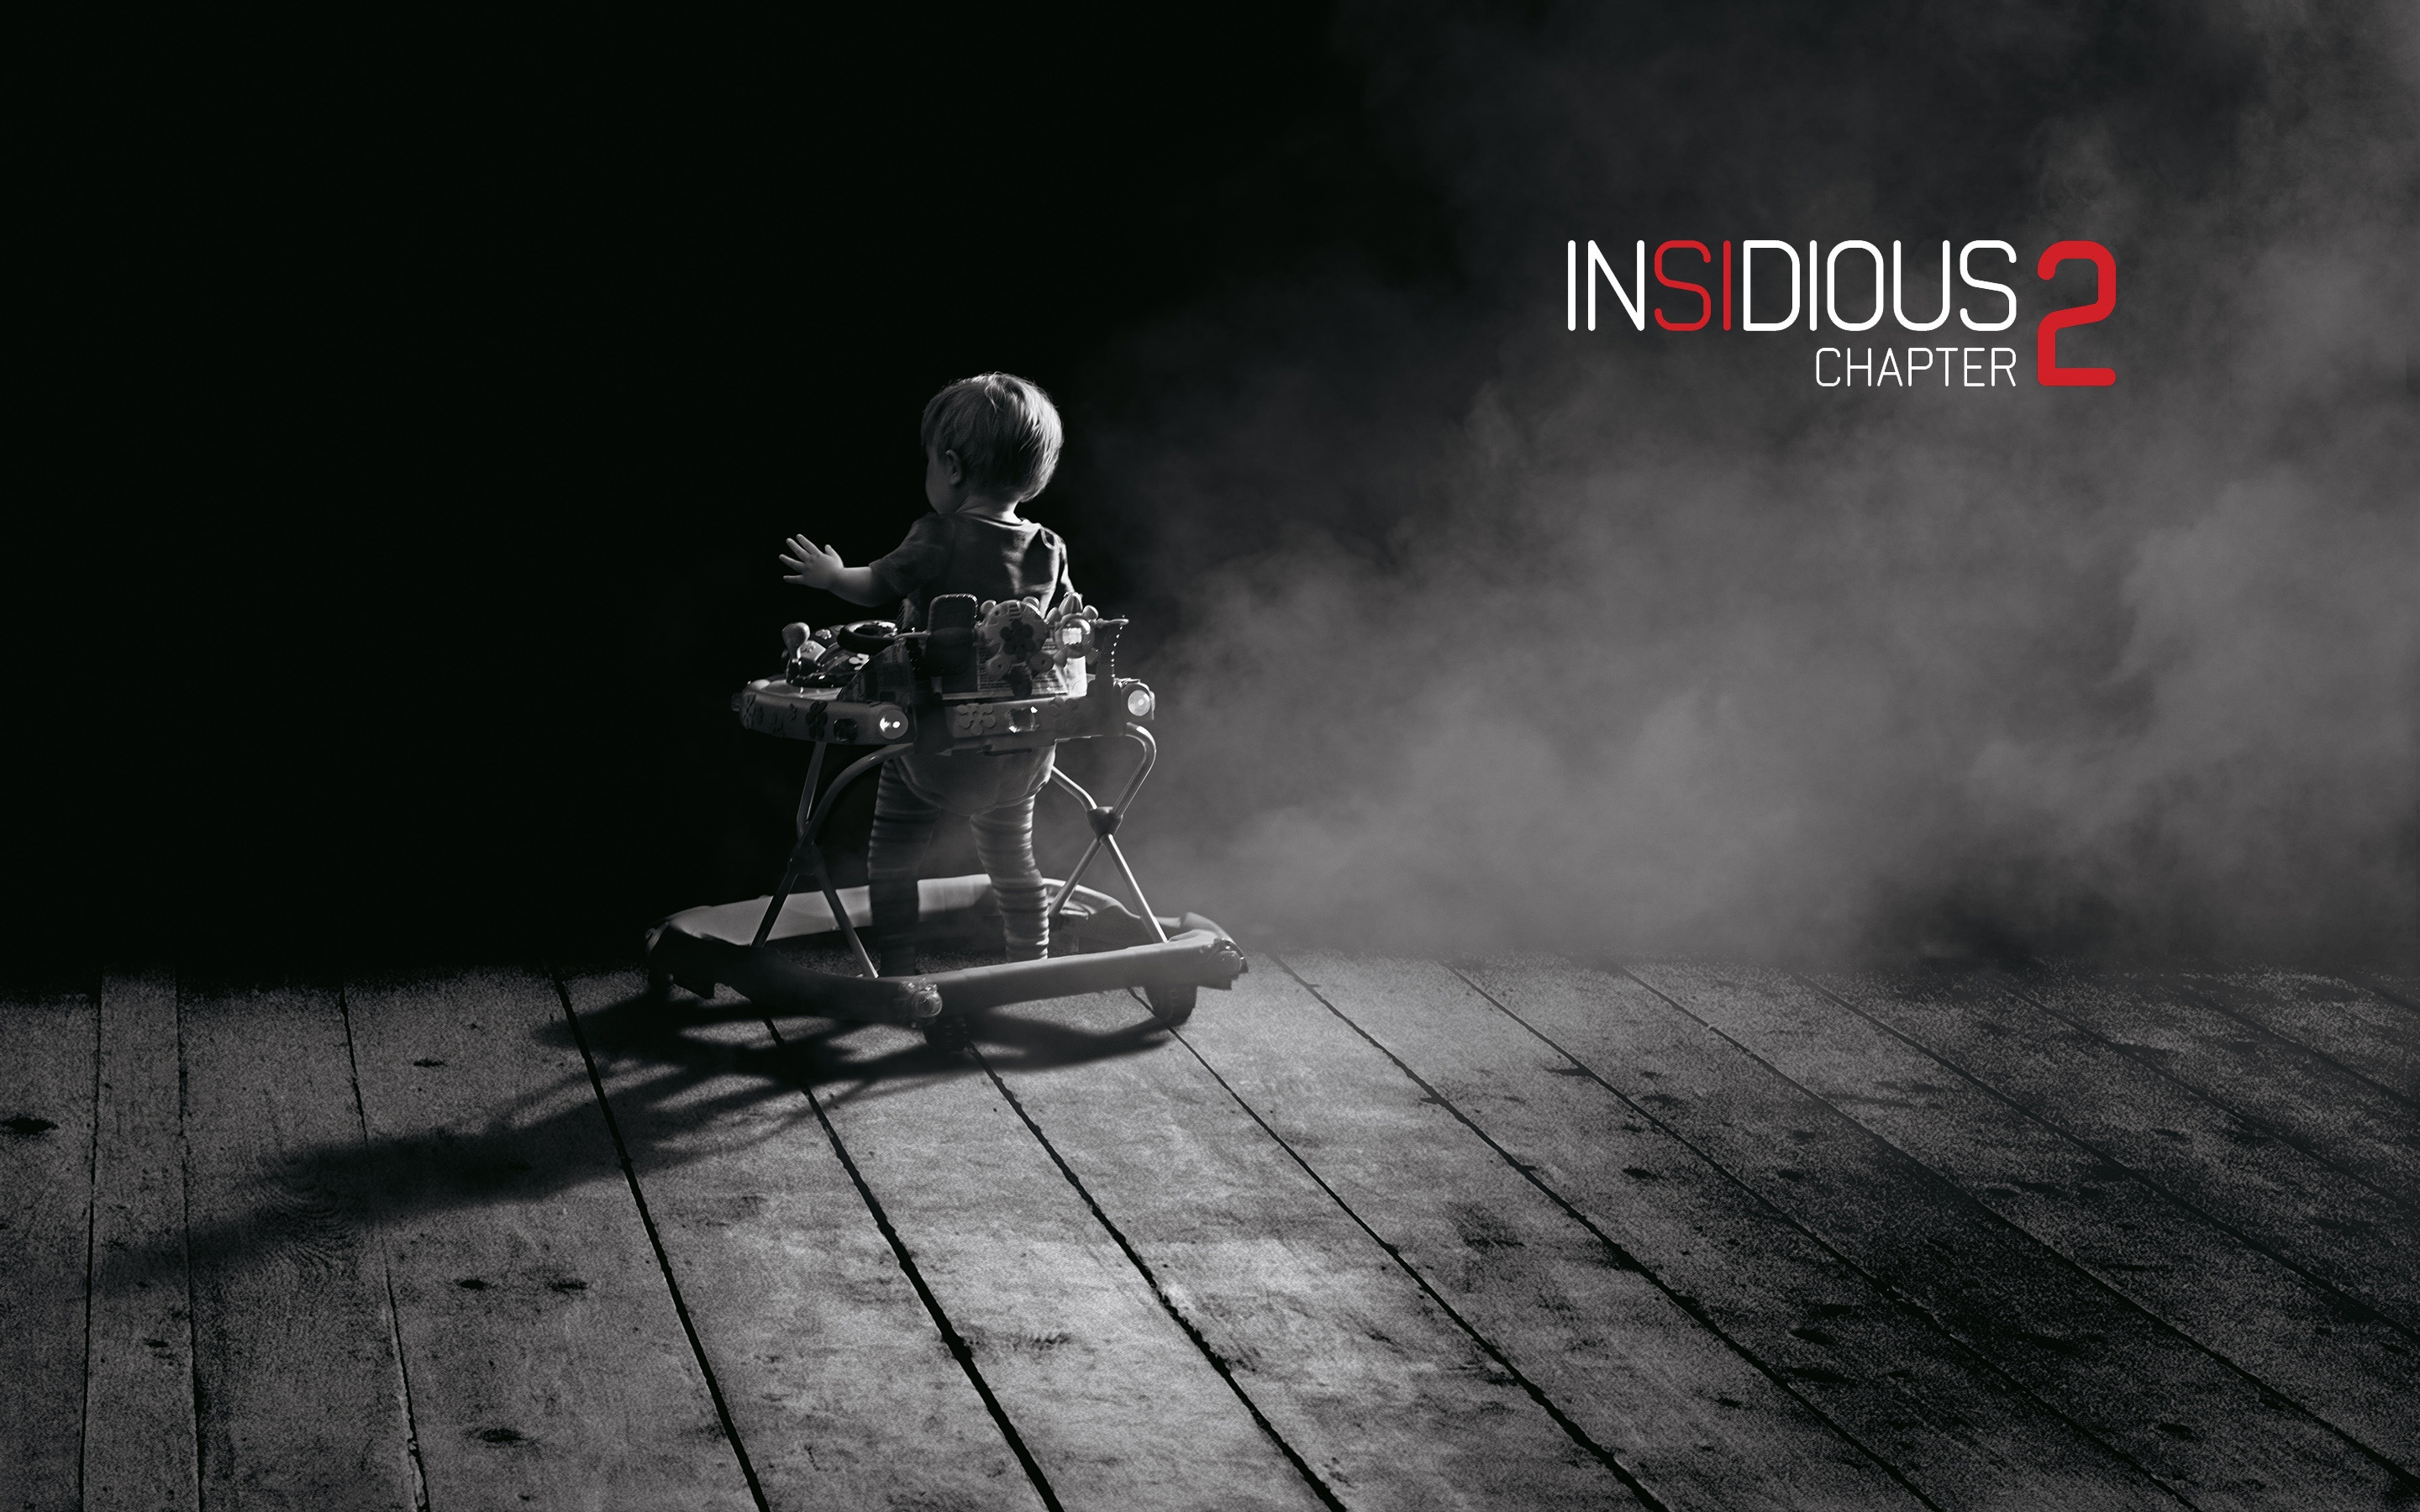 Insidious Chapter 2 Movie Wallpapers In Jpg Format For Free Download